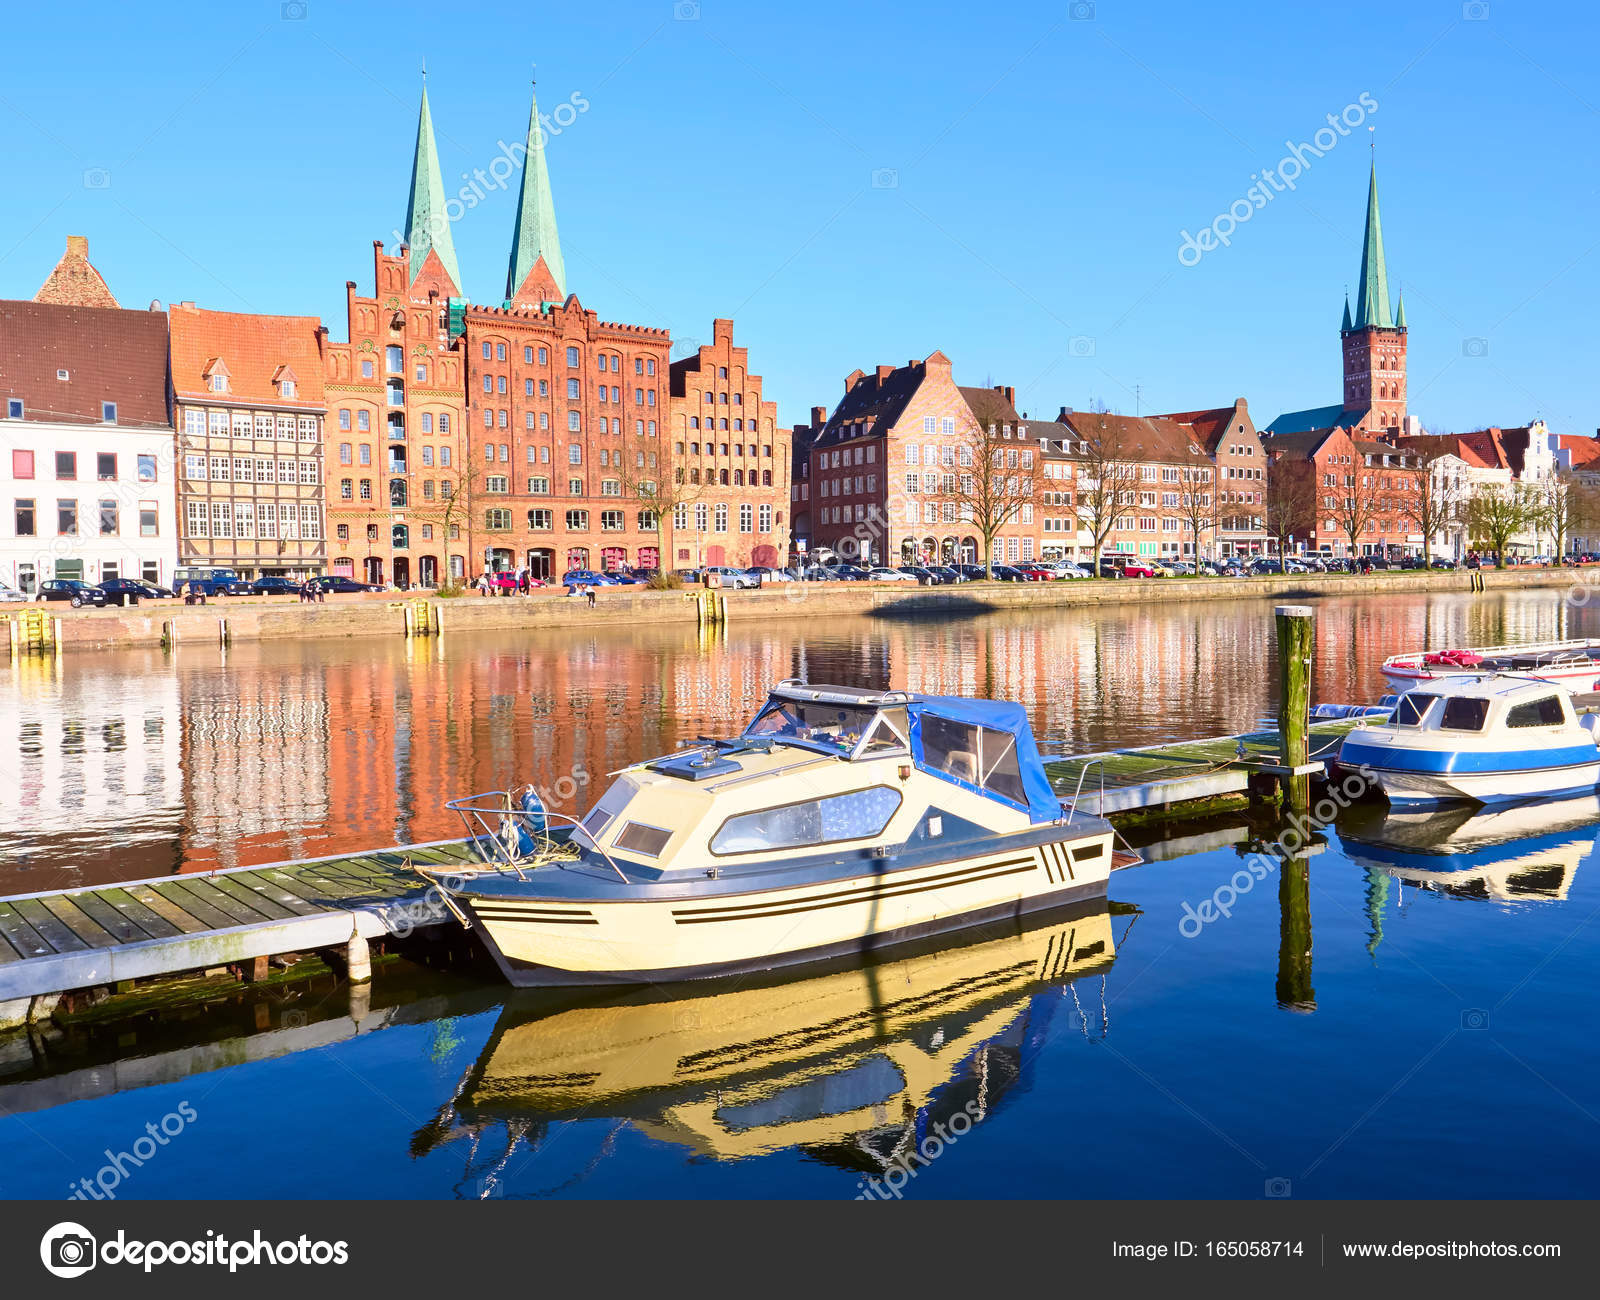 Boats and historic buildings at trave river old town of lubeck boats and historic buildings at trave river old town of lubeck stock photo publicscrutiny Image collections